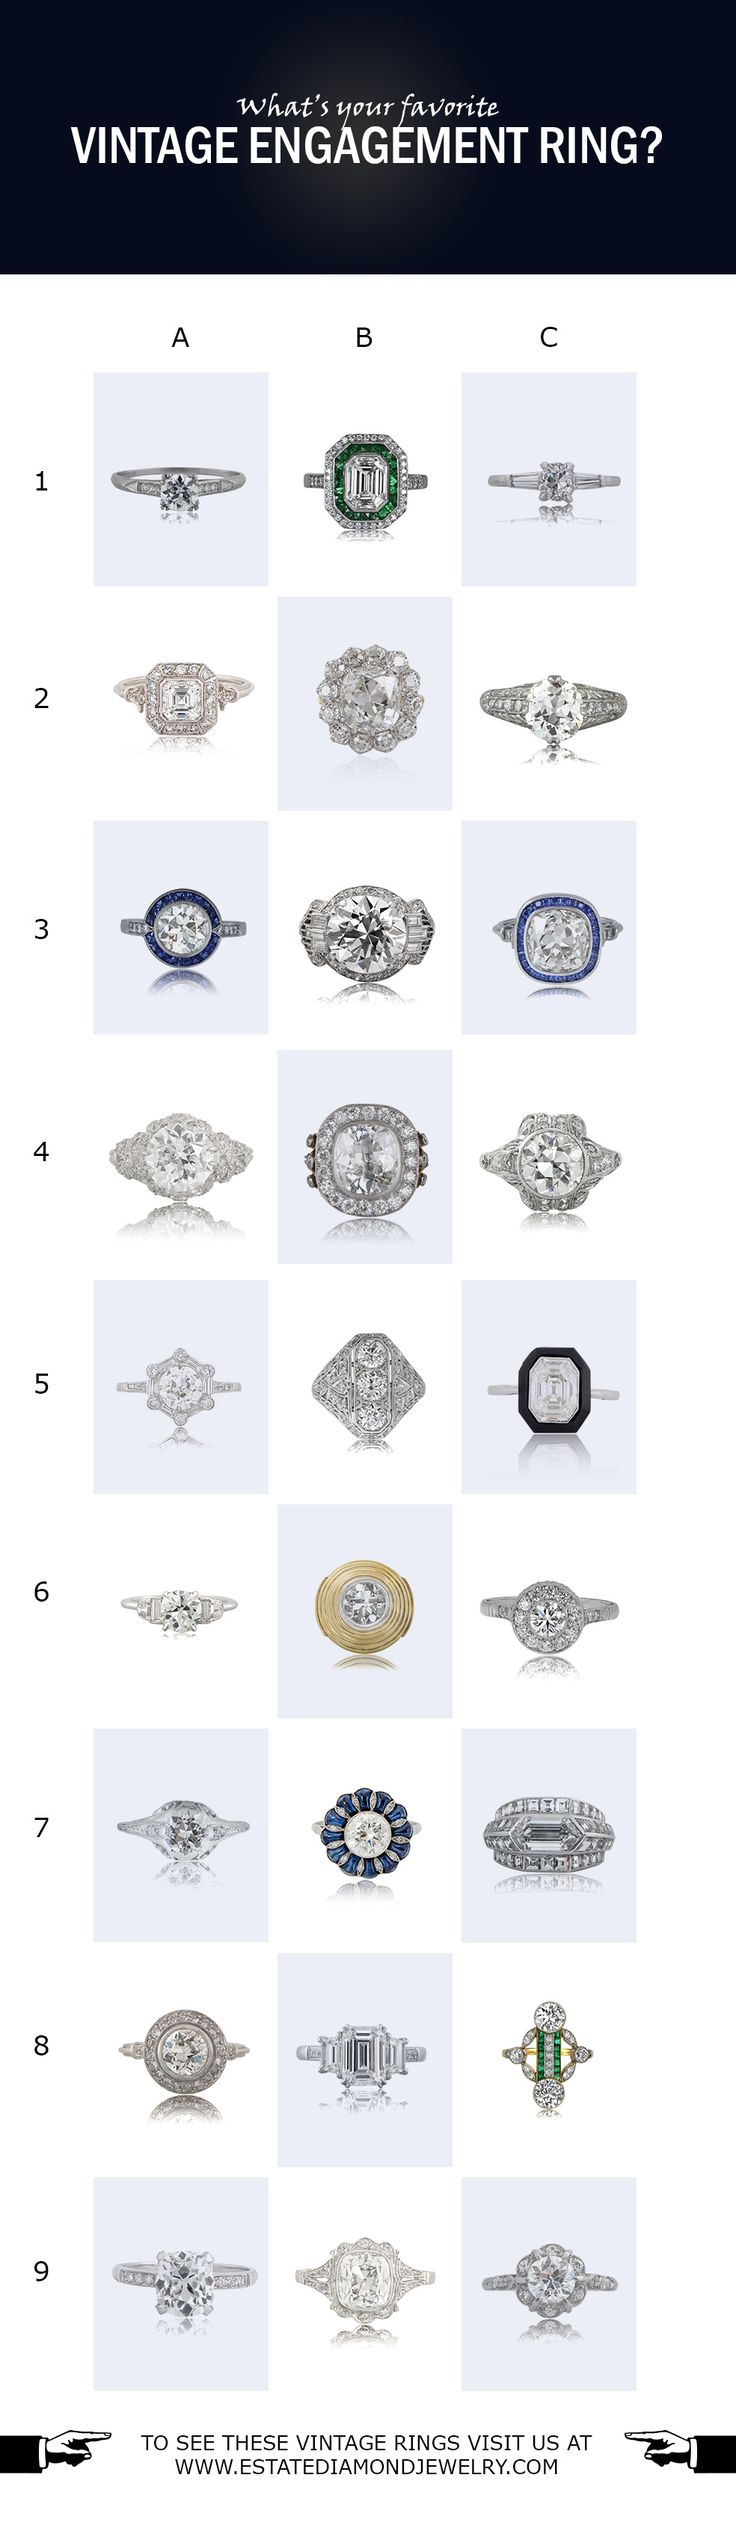 What's your favorite Vintage Engagement Ring? Tell us in the comments below.